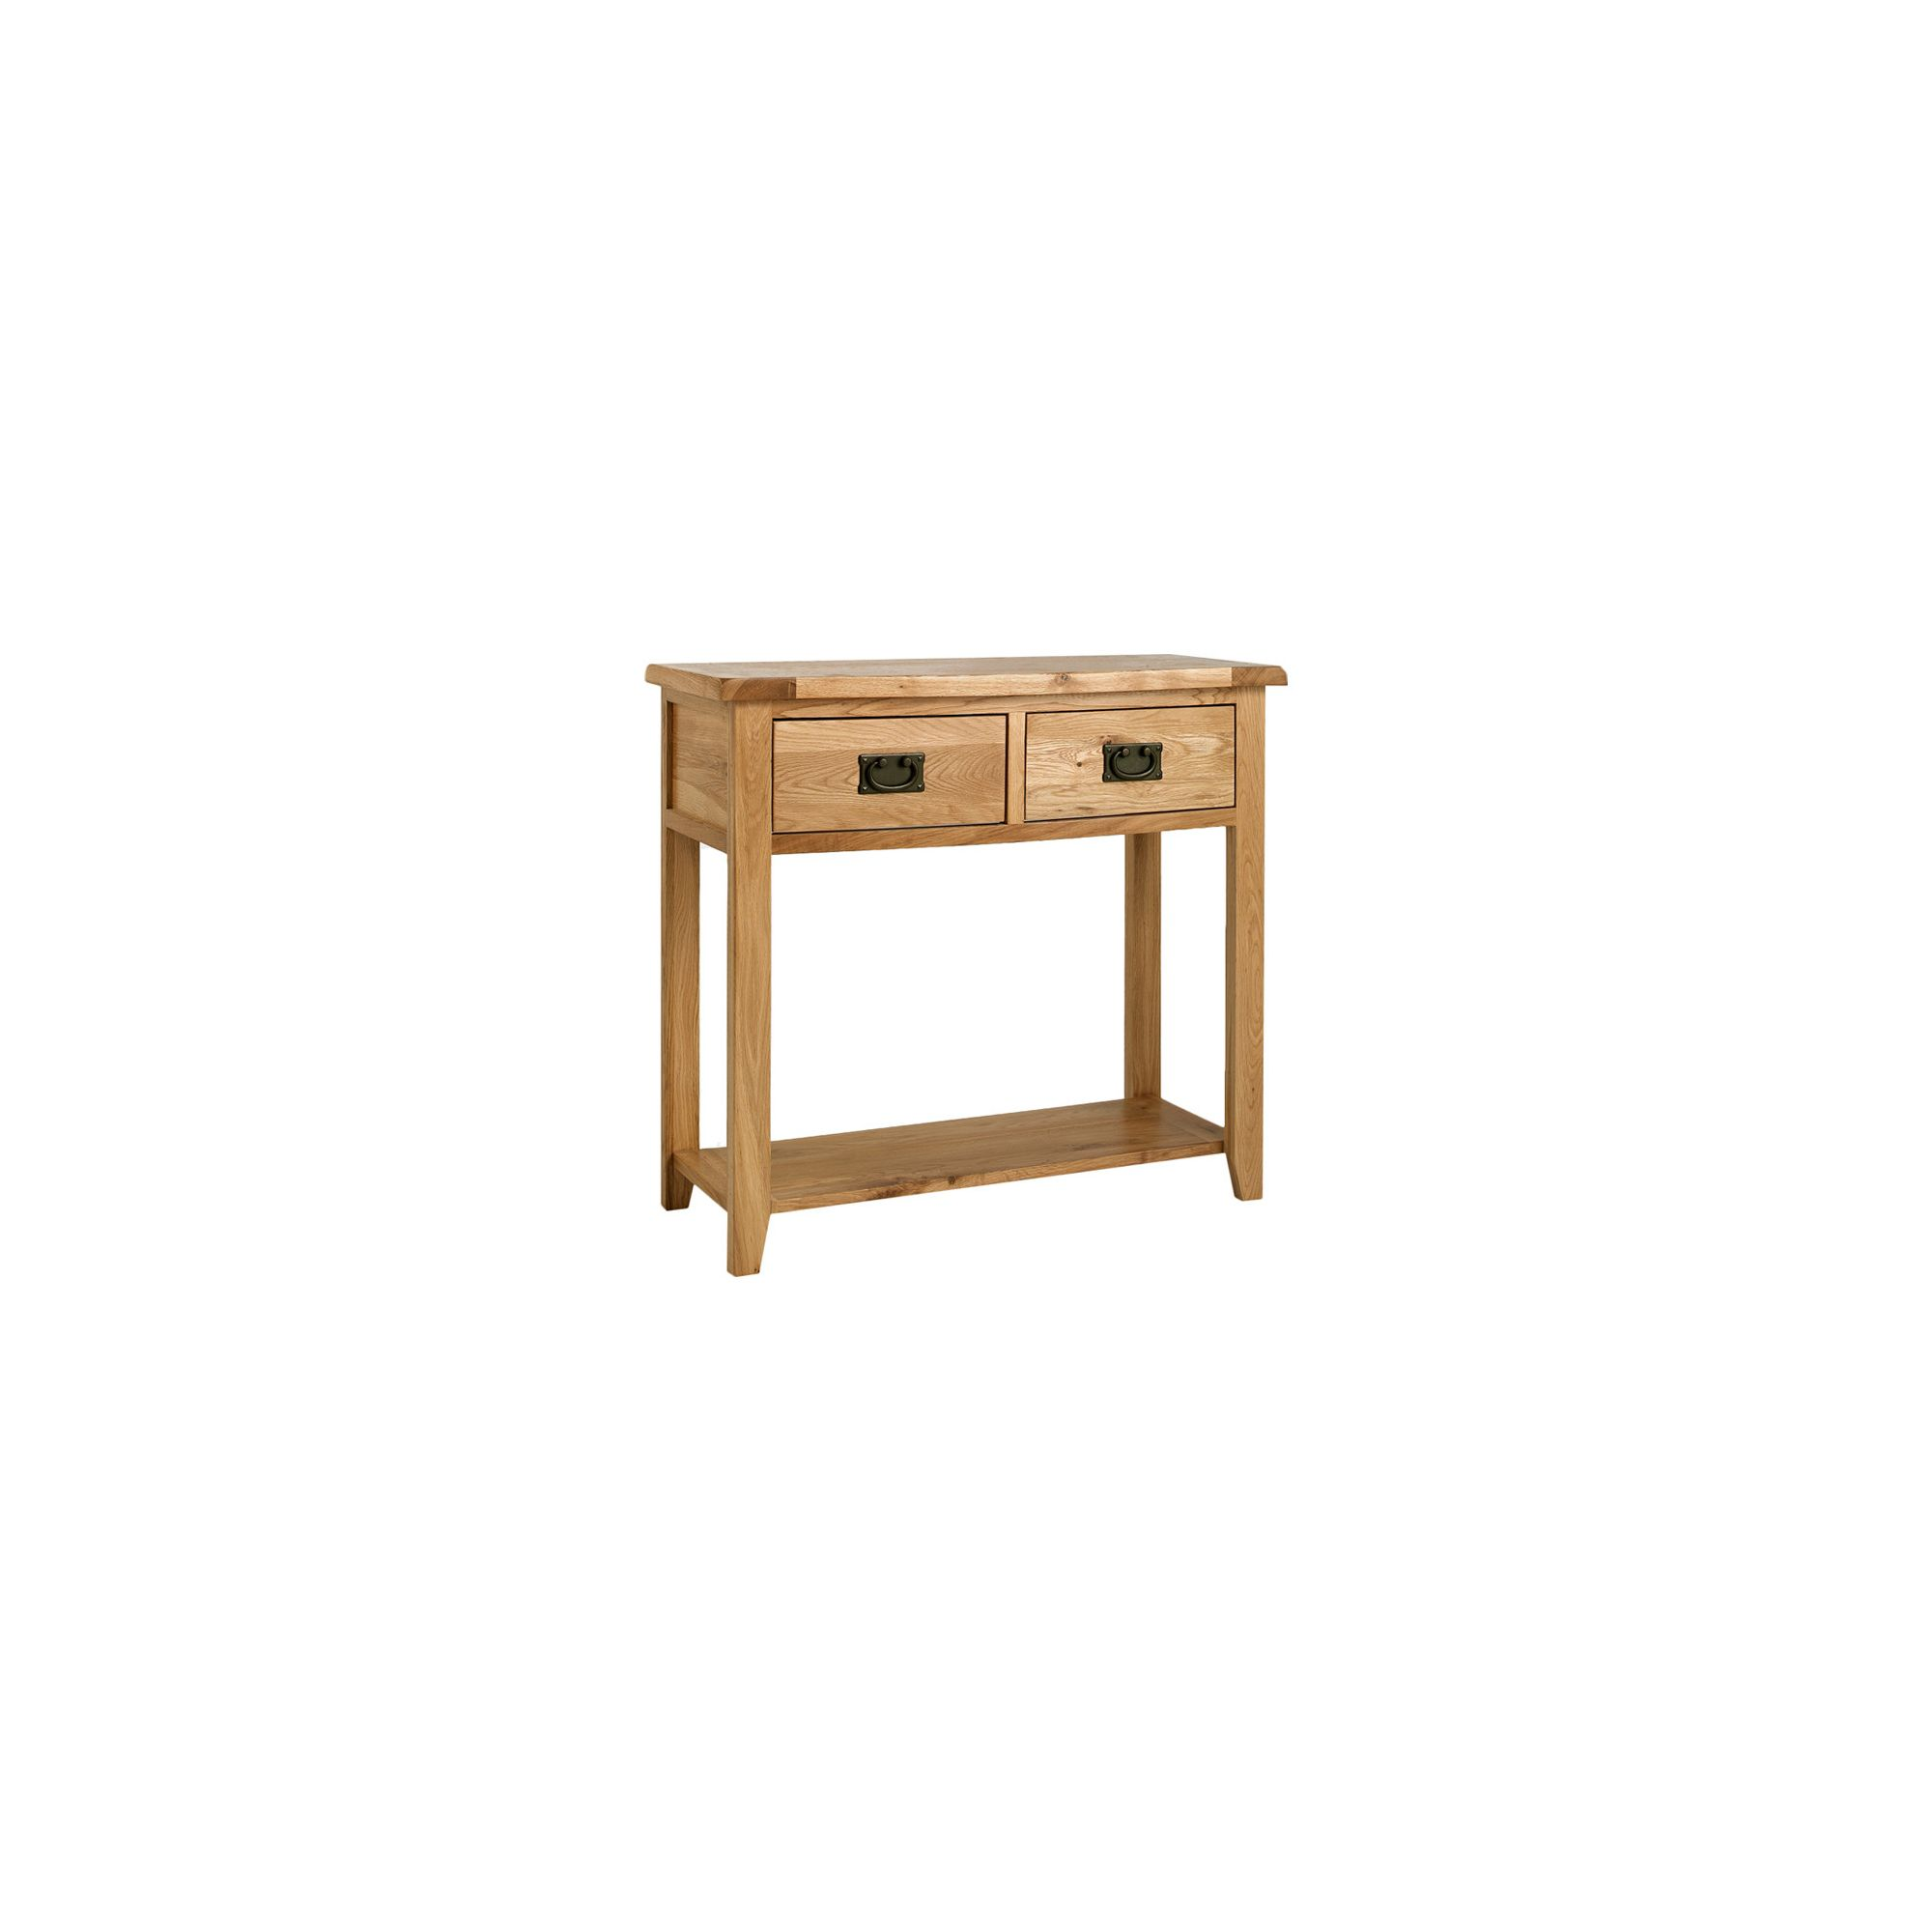 Ametis Westbury Reclaimed Oak Console Table